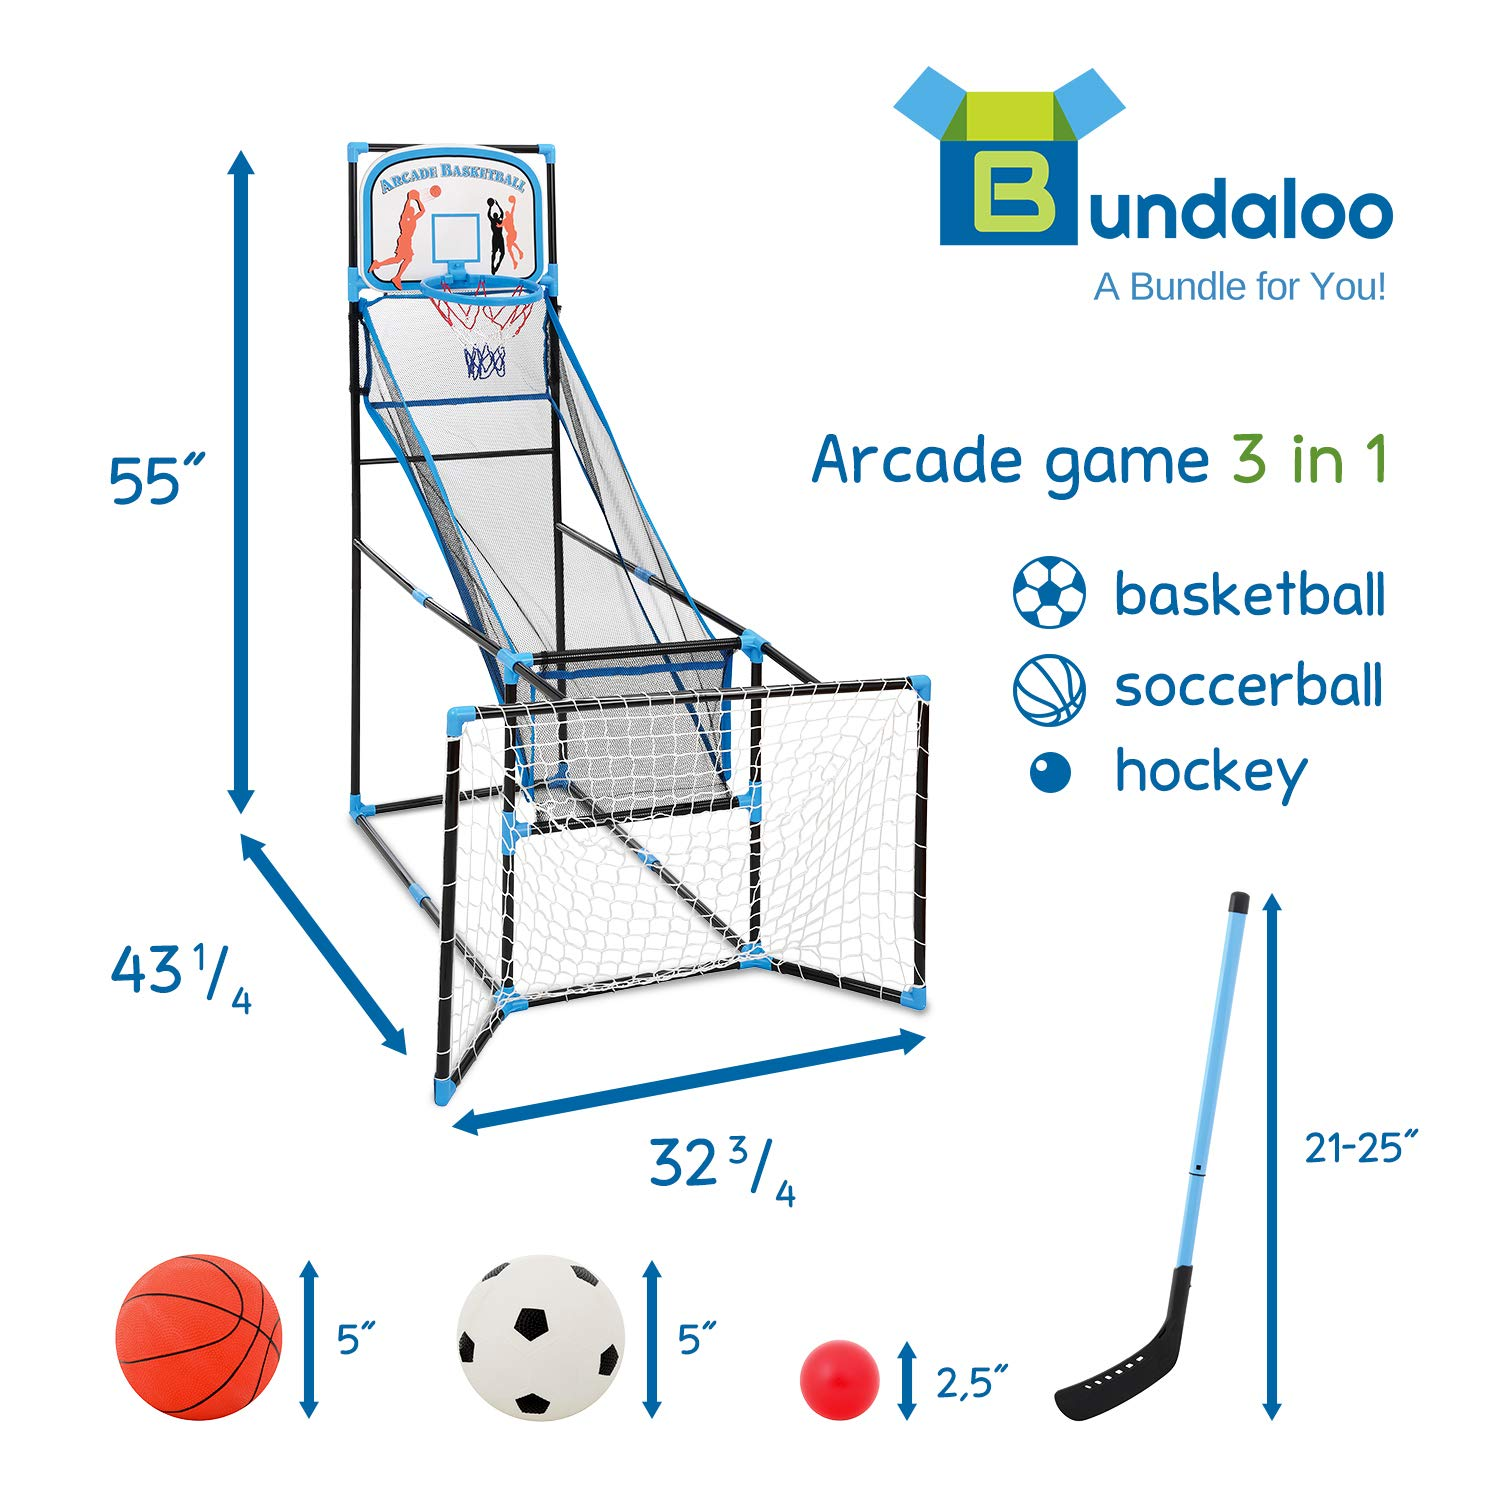 Bundaloo 3 in 1 Arcade Game | Basketball, Soccer, and Hockey Kids Toys | Fun Outdoor and Indoor Ball Games for Boys, Girls, Toddler | Includes 3 Balls, Backboard Hoop, Net Goal, Stick, and Air Pump by Bundaloo (Image #2)